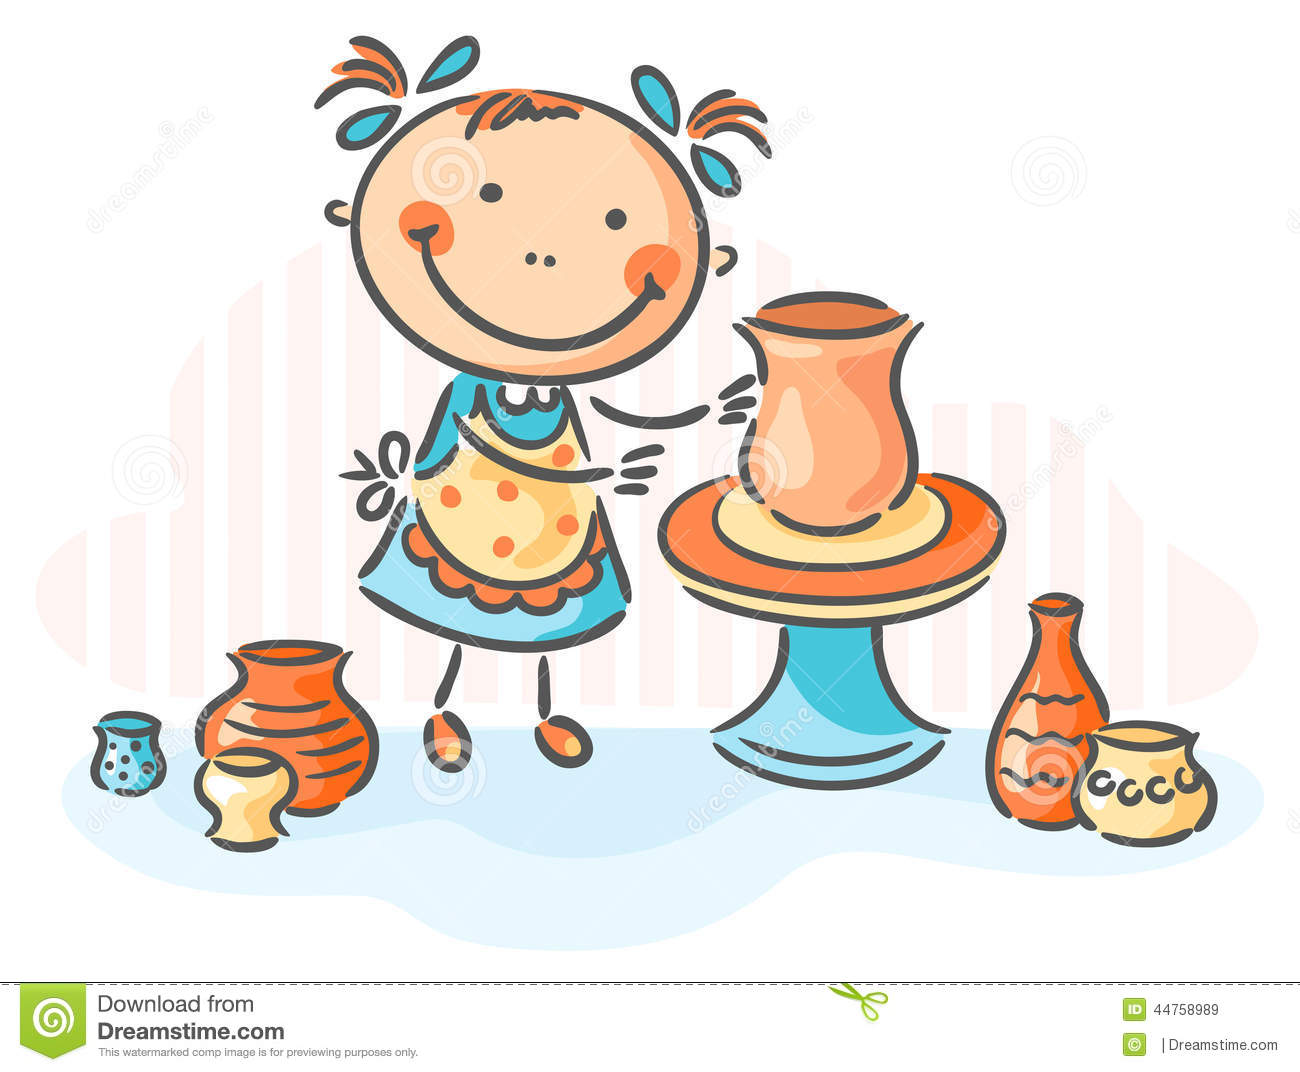 Making Pottery As A Creative Activity Stock Vector - Image: 44758989